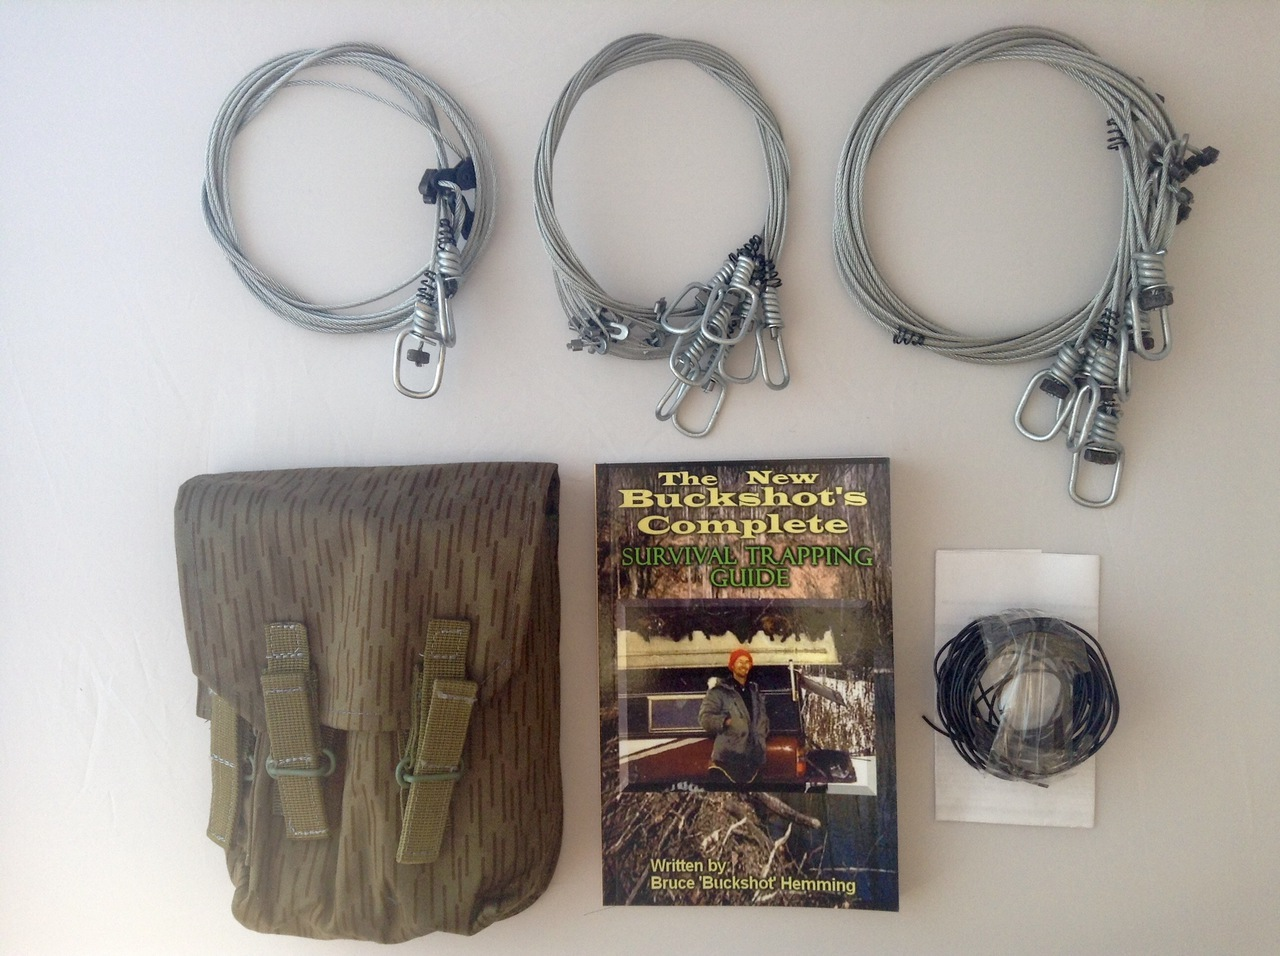 Buckshot's Emergency Snare Kit & Buckshot's Complete Survival Trapping Guide